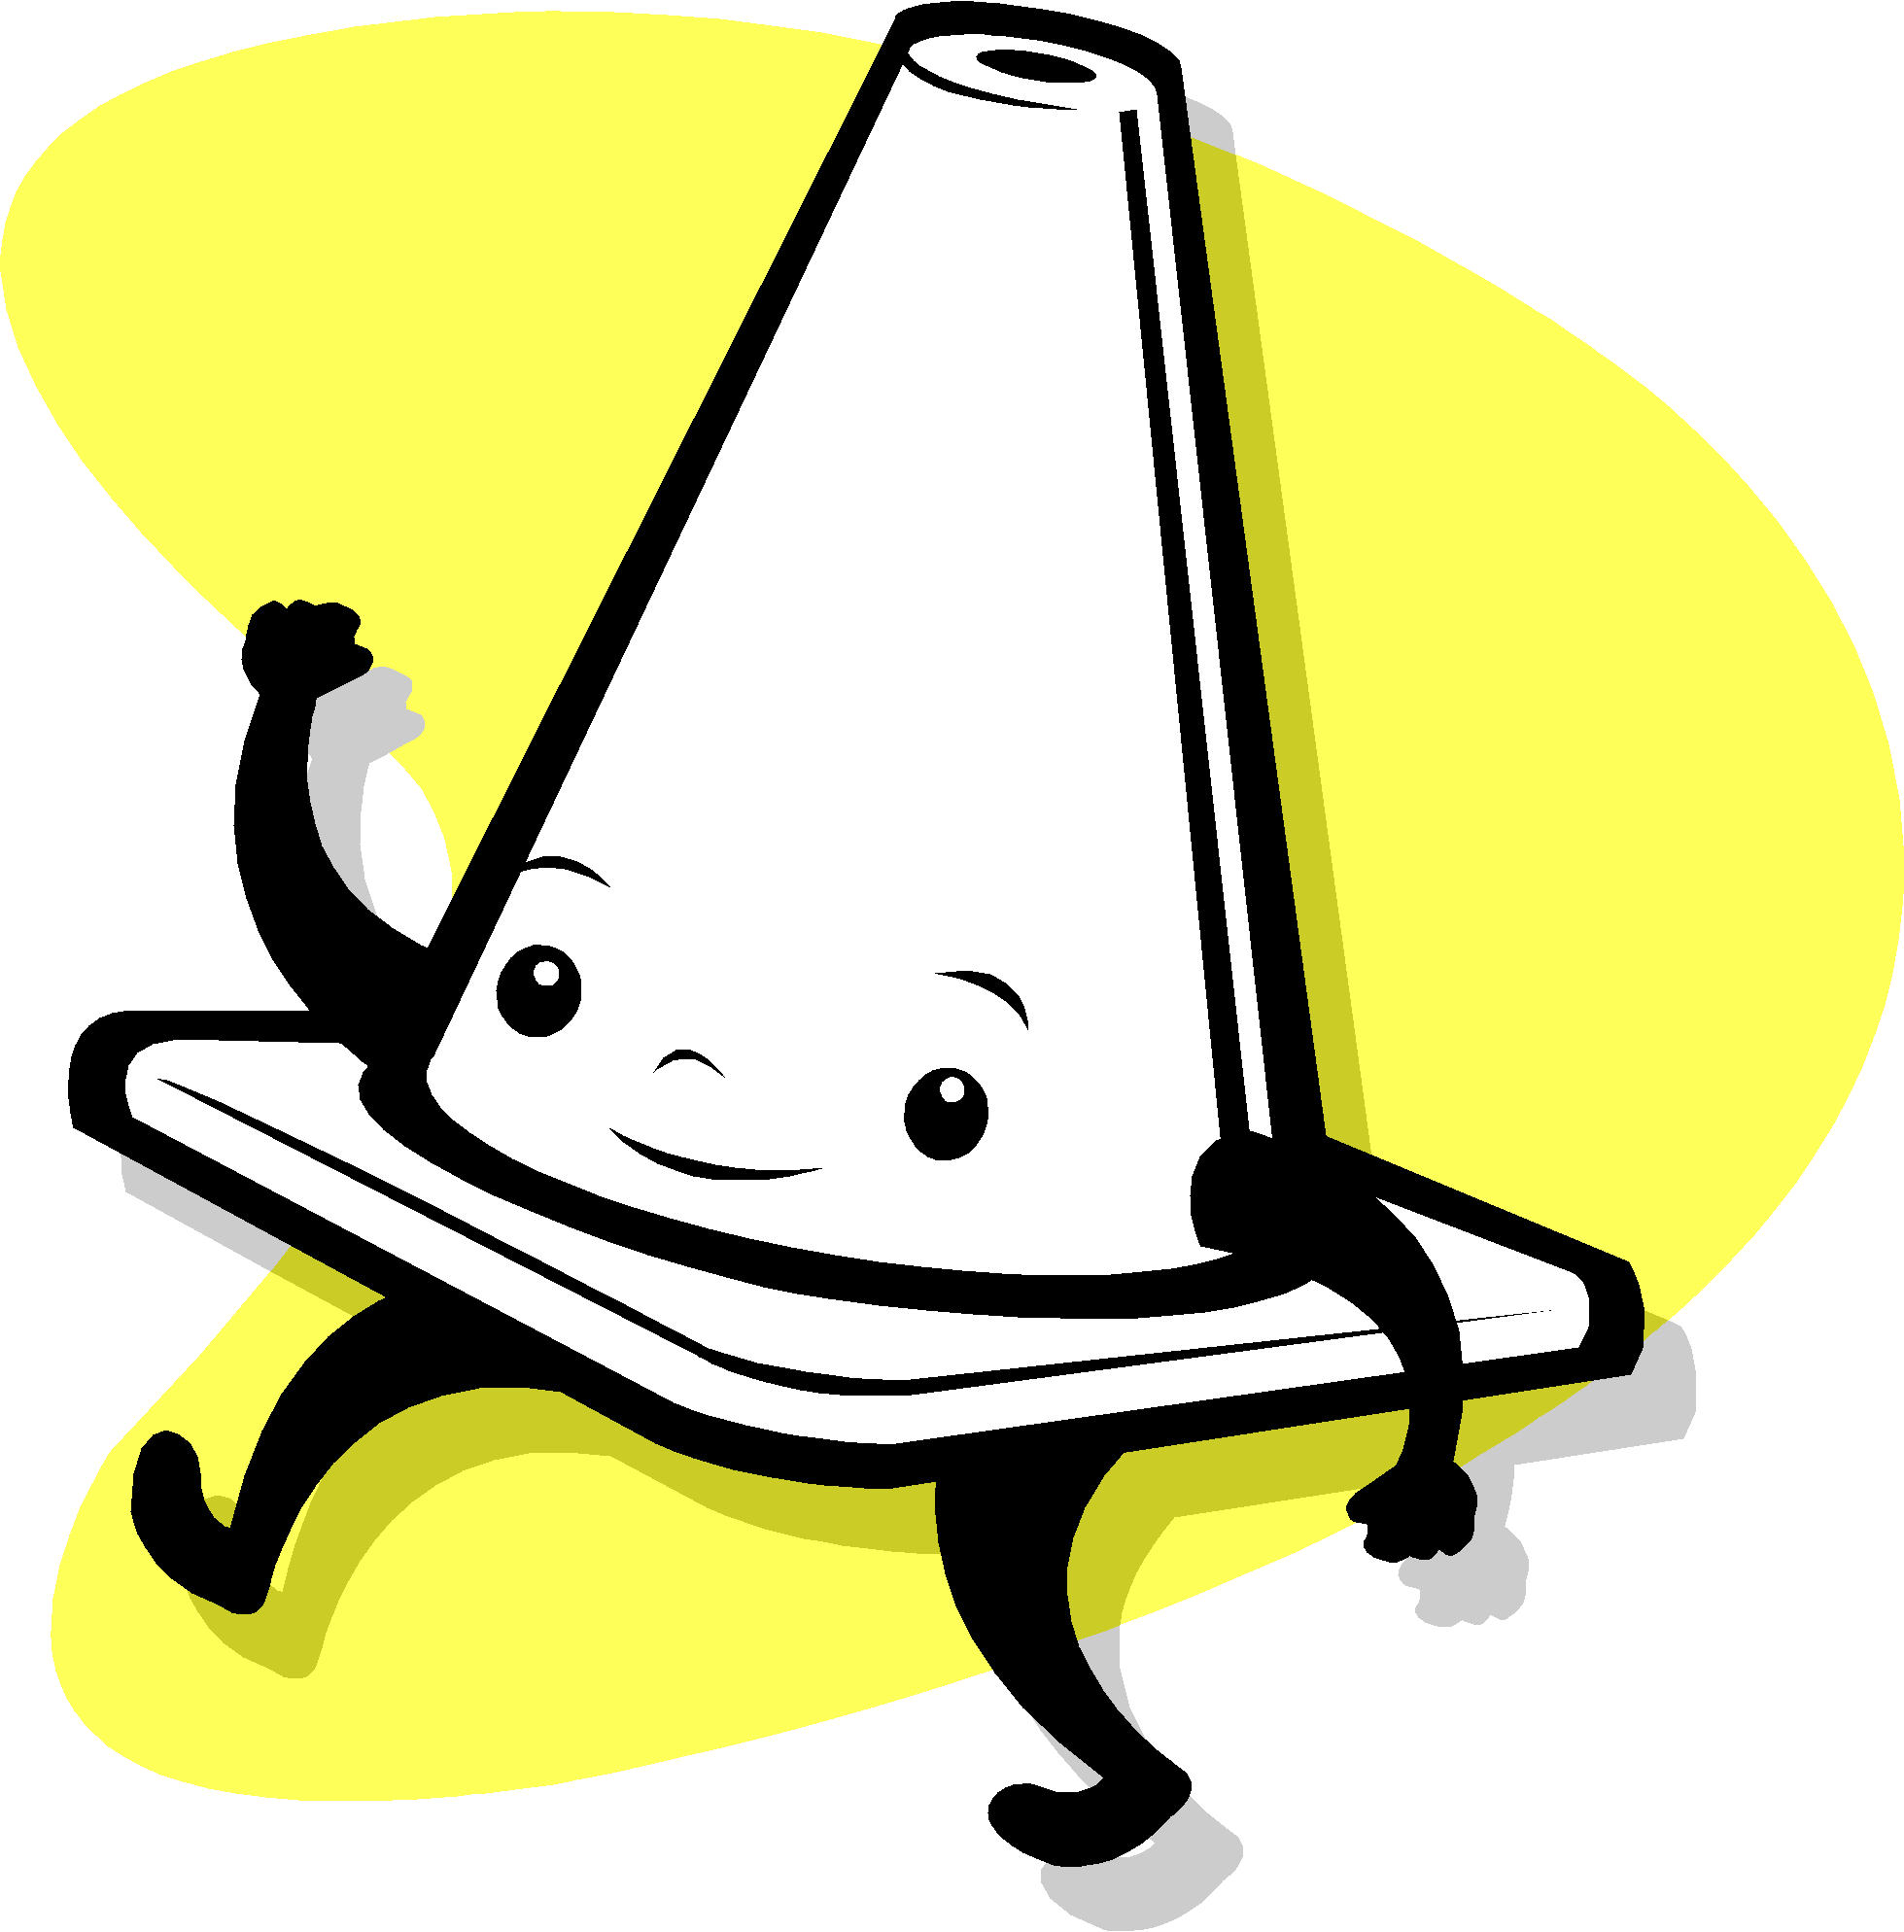 Misc clipart safety cone Clip art Safety photos Workplace